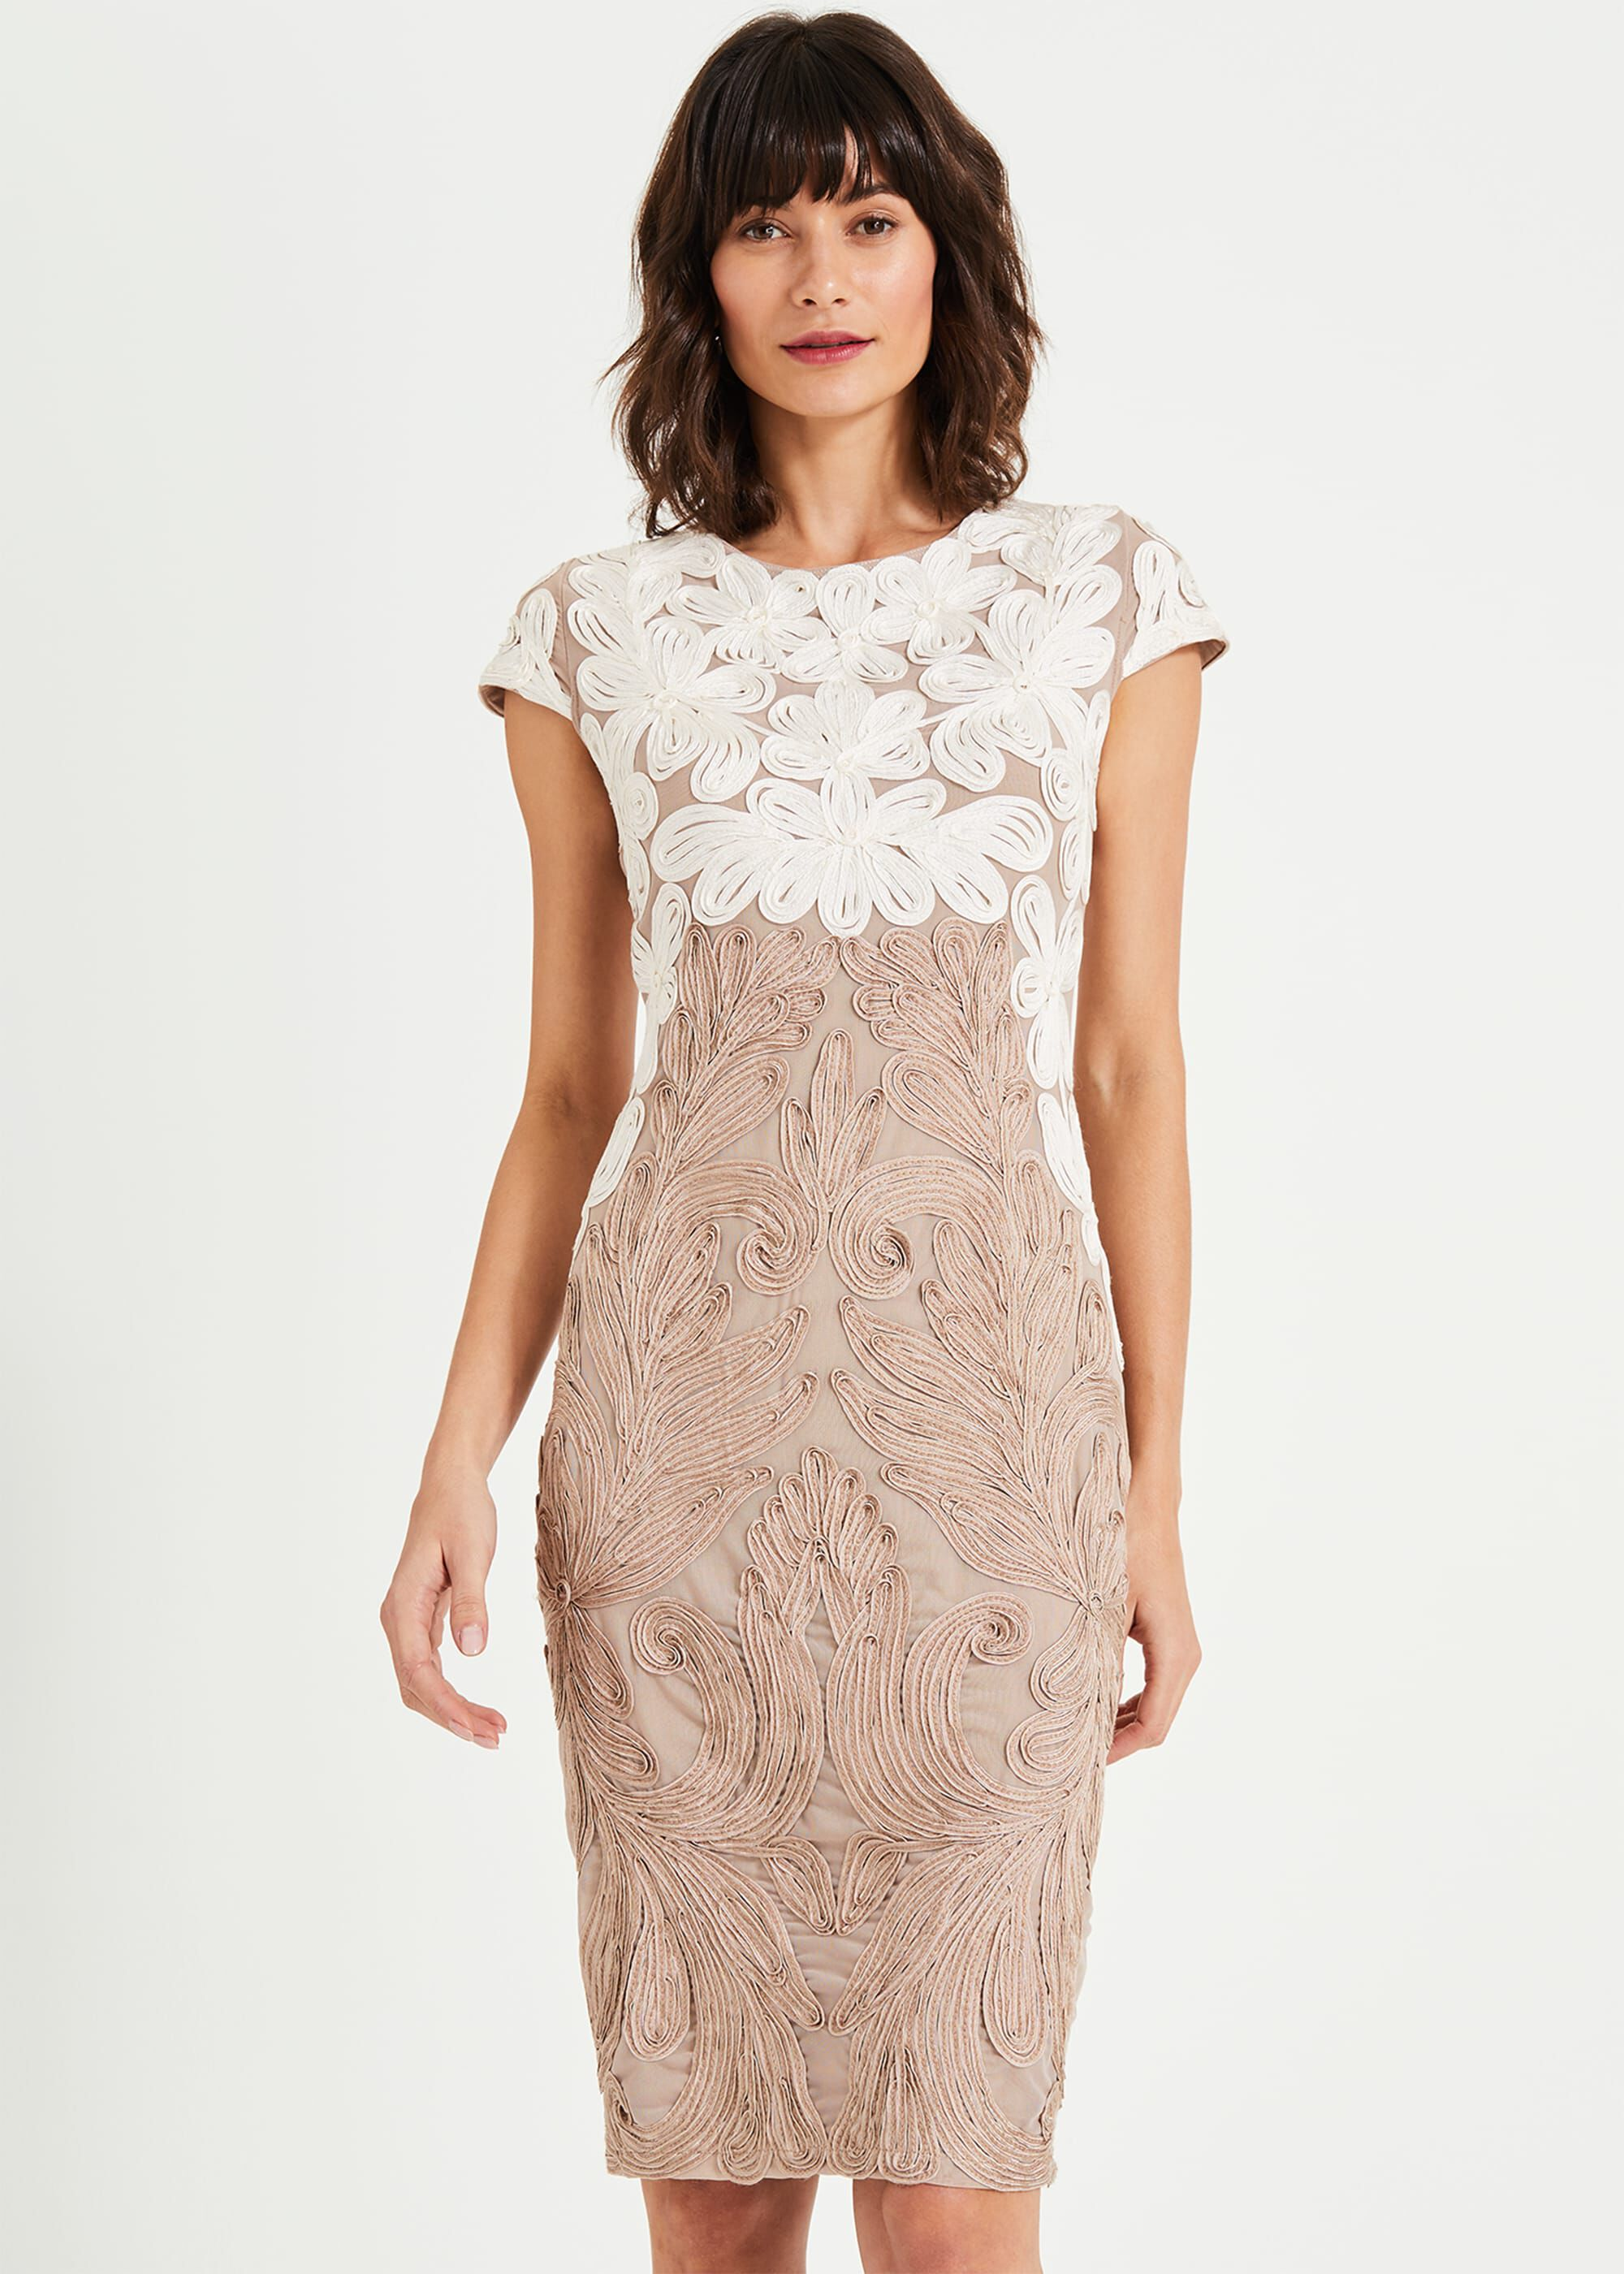 Phase Eight Catheleen Tapework Lace Dress, Cream, Fitted, Occasion Dress